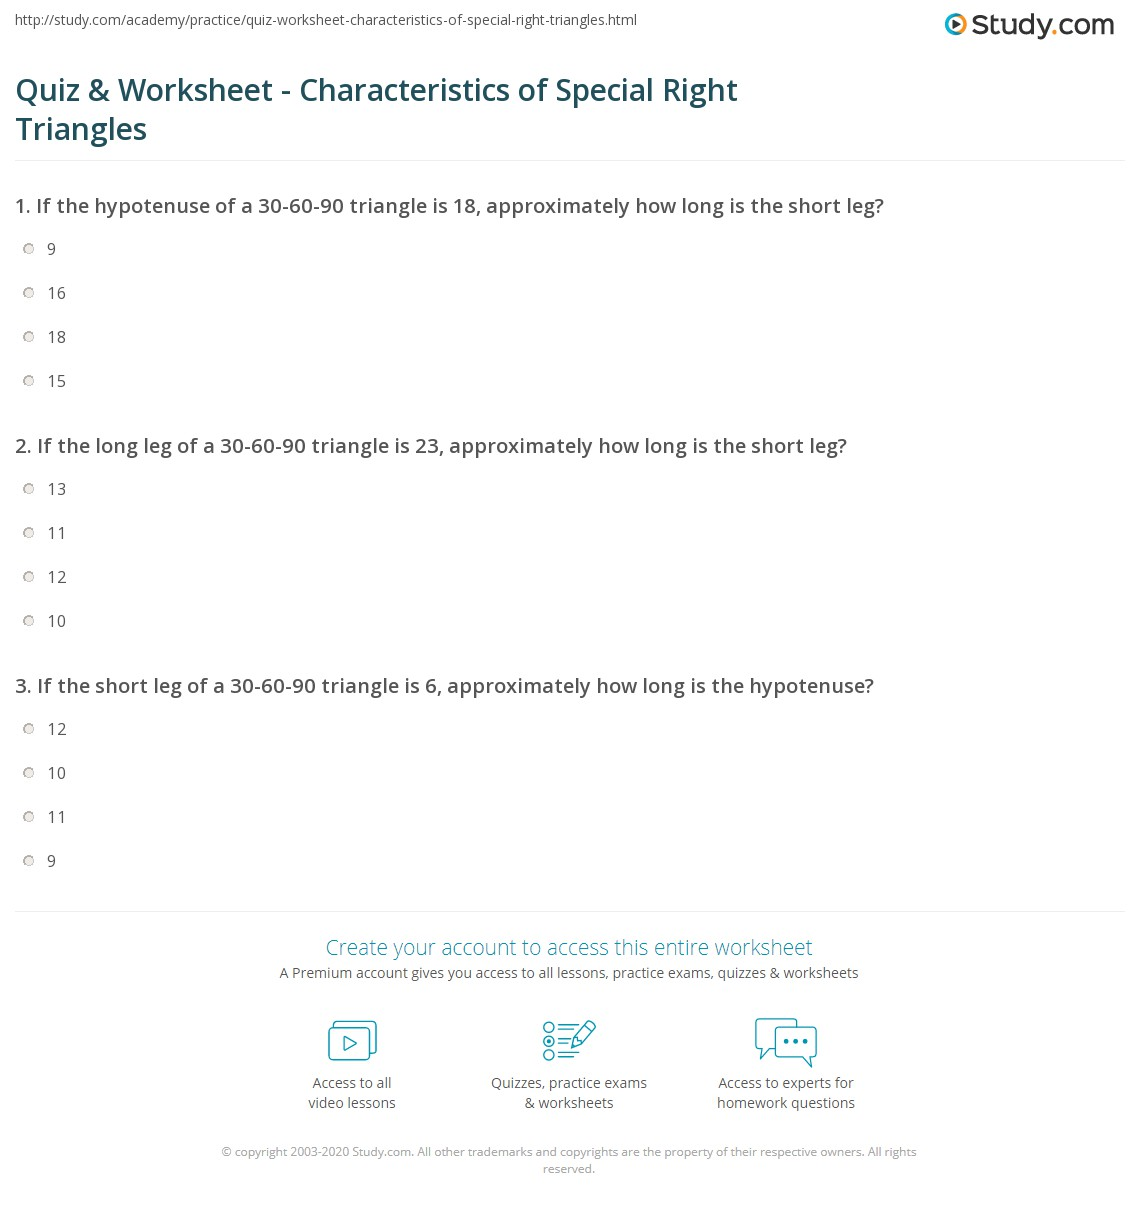 Worksheet 30-60-90 Triangle Worksheet quiz worksheet characteristics of special right triangles print types and properties worksheet